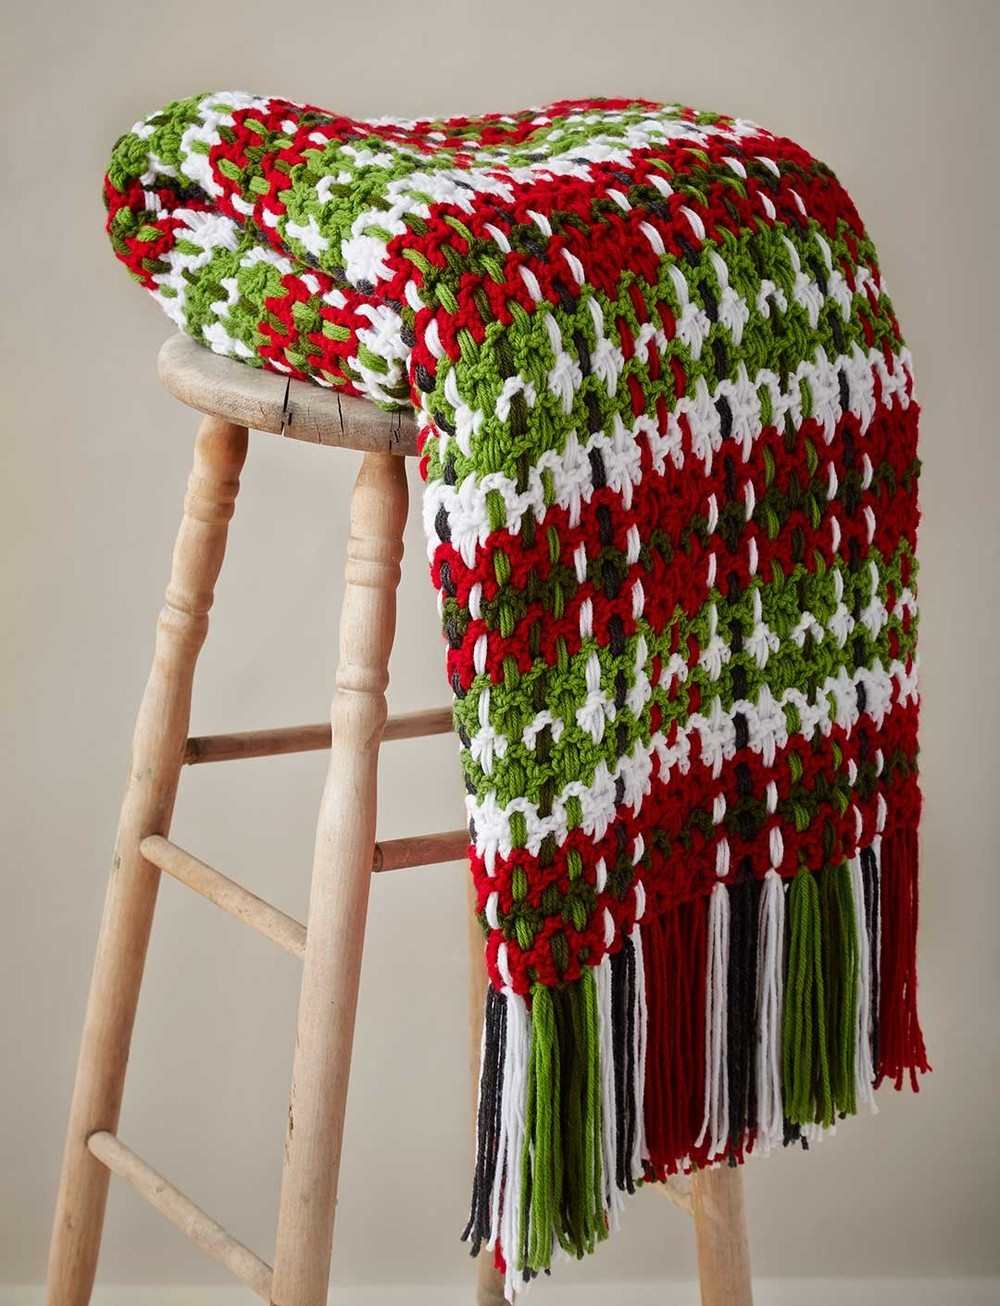 Contemporary Plaid Crochet Afghan Pattern